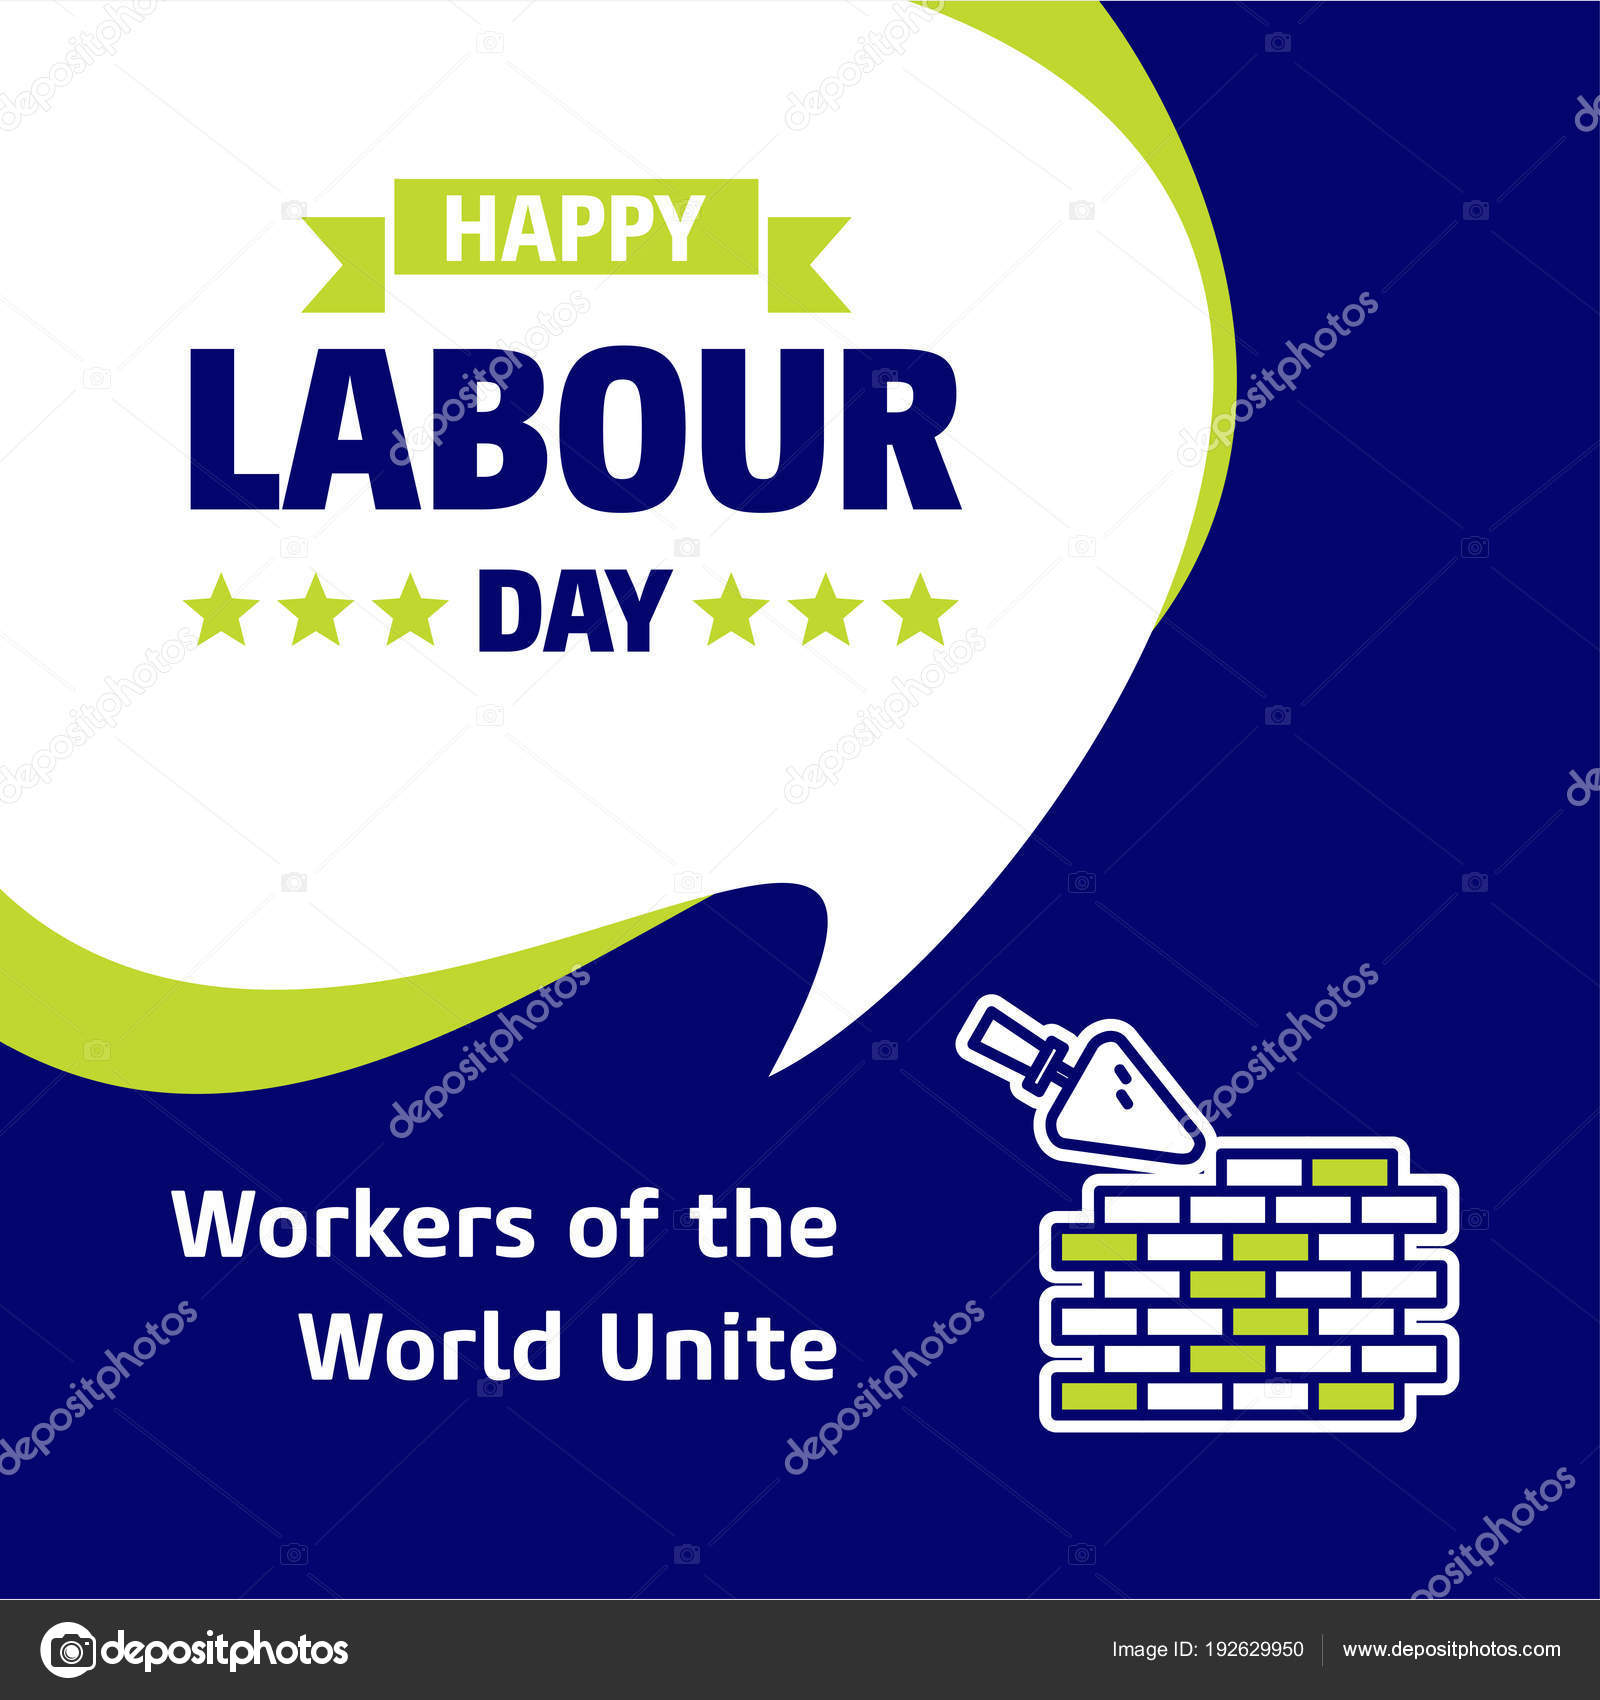 Happy labour day greeting card design green blue colors vector happy labour day greeting card design green blue colors vector stock vector m4hsunfo